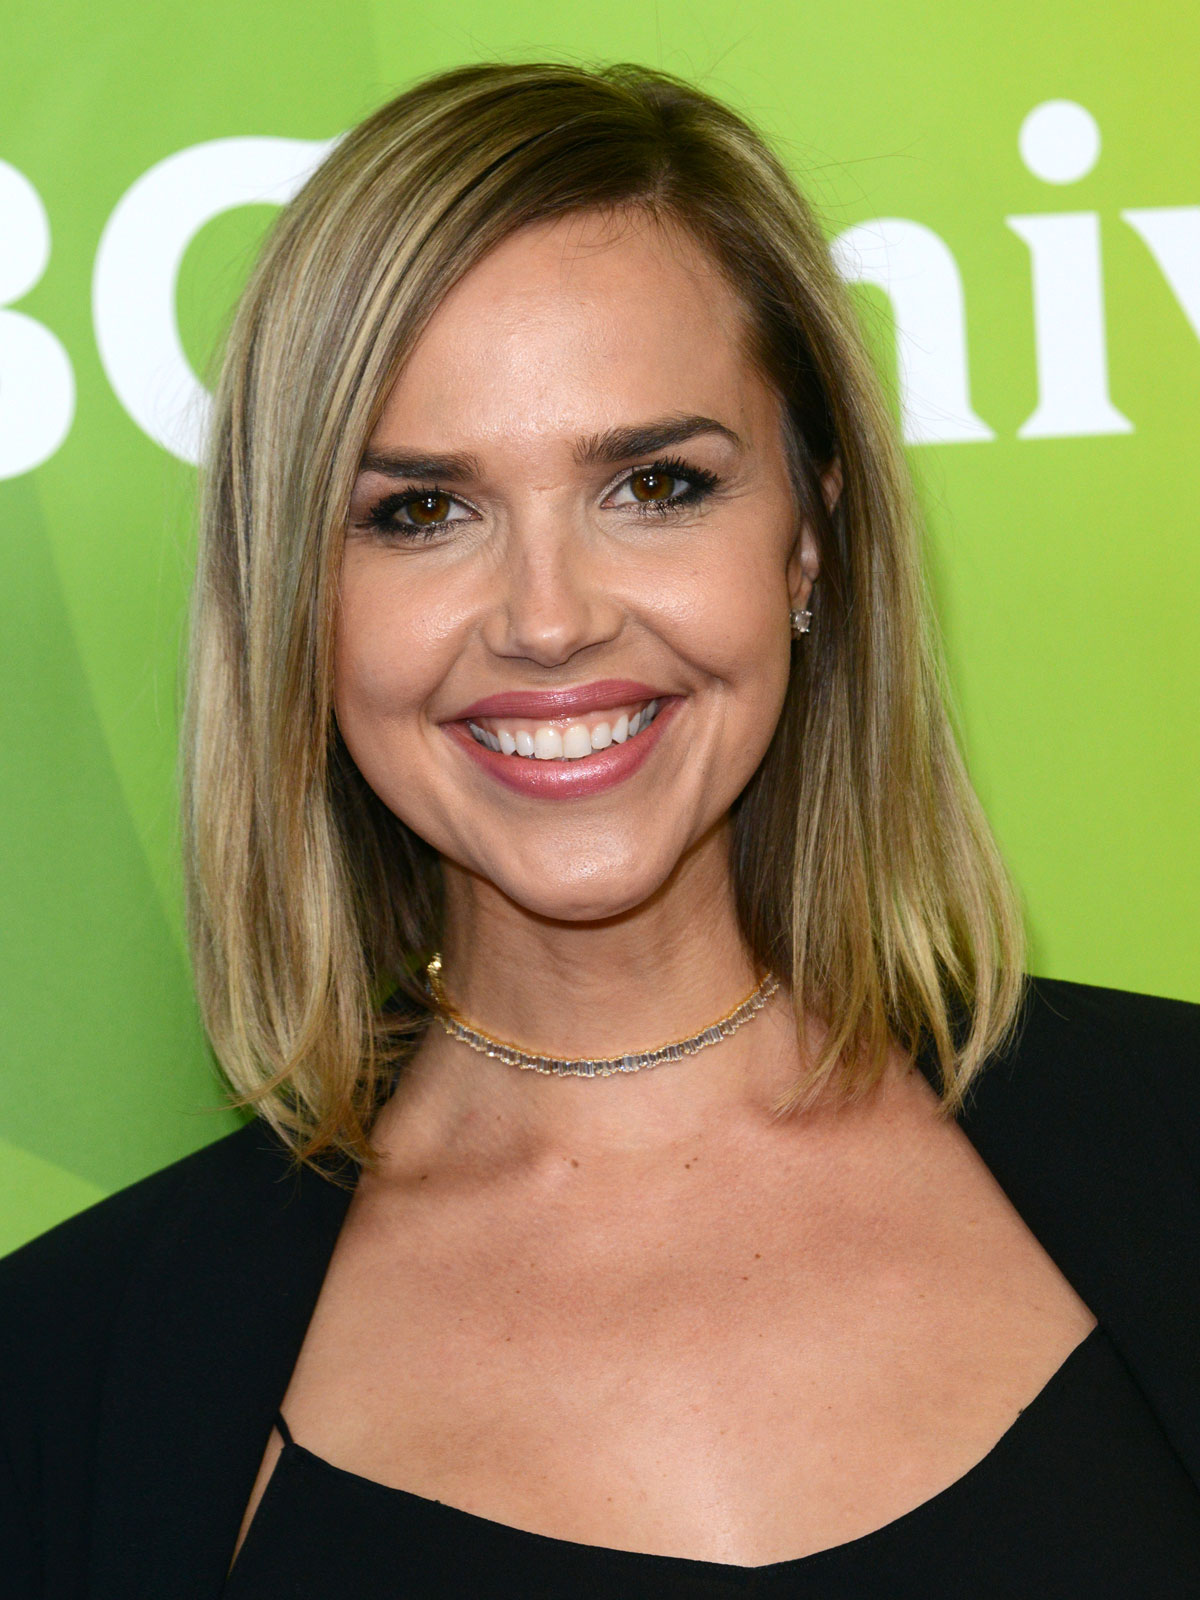 Arielle kebbel filmographie allocin for 50 plus pictures